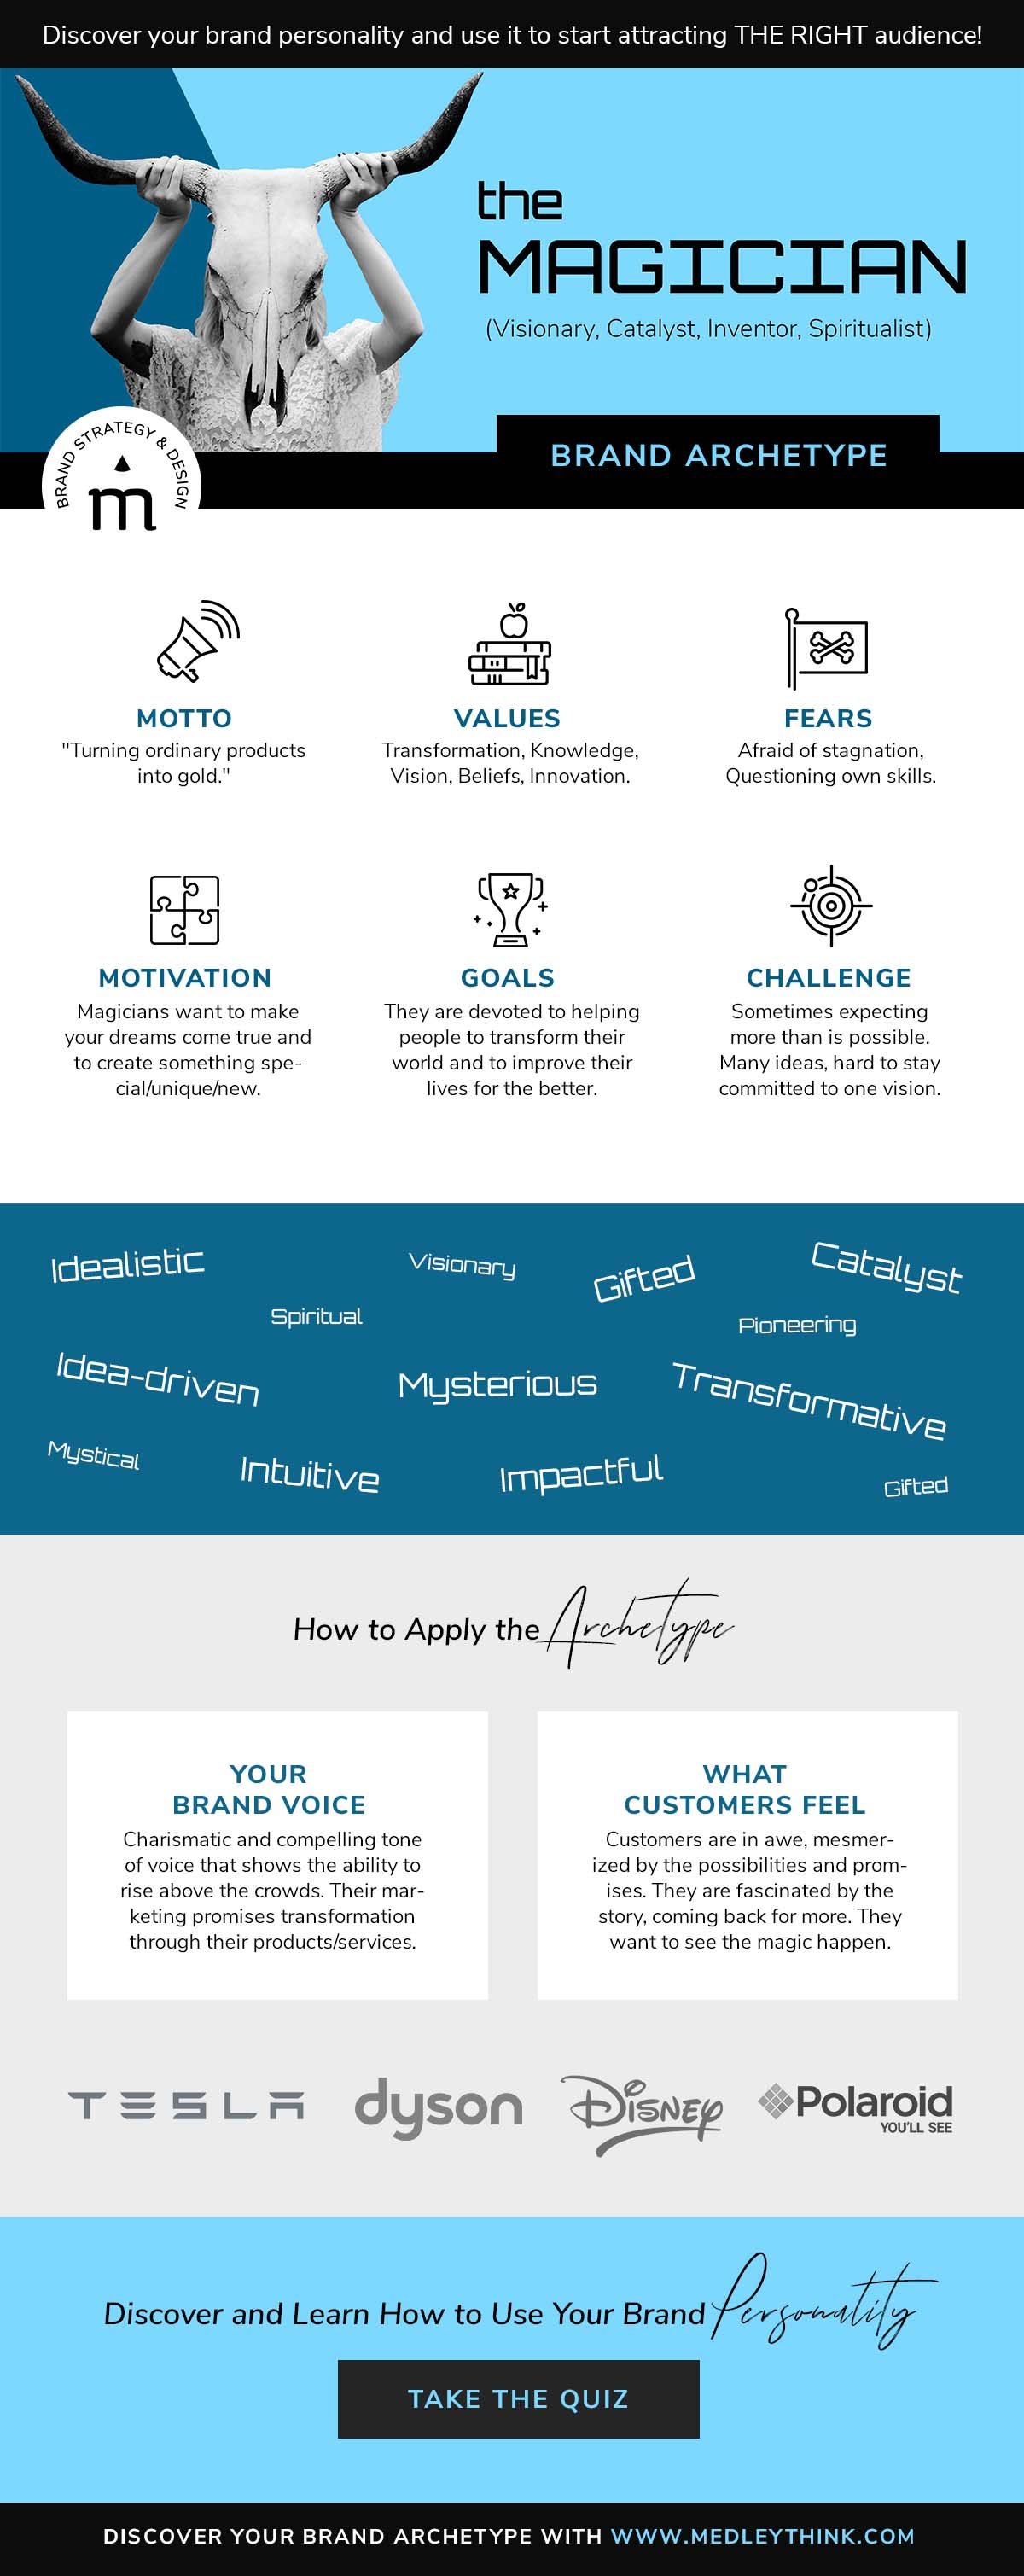 Magician Brand Archetype // Get confident about your brand personality